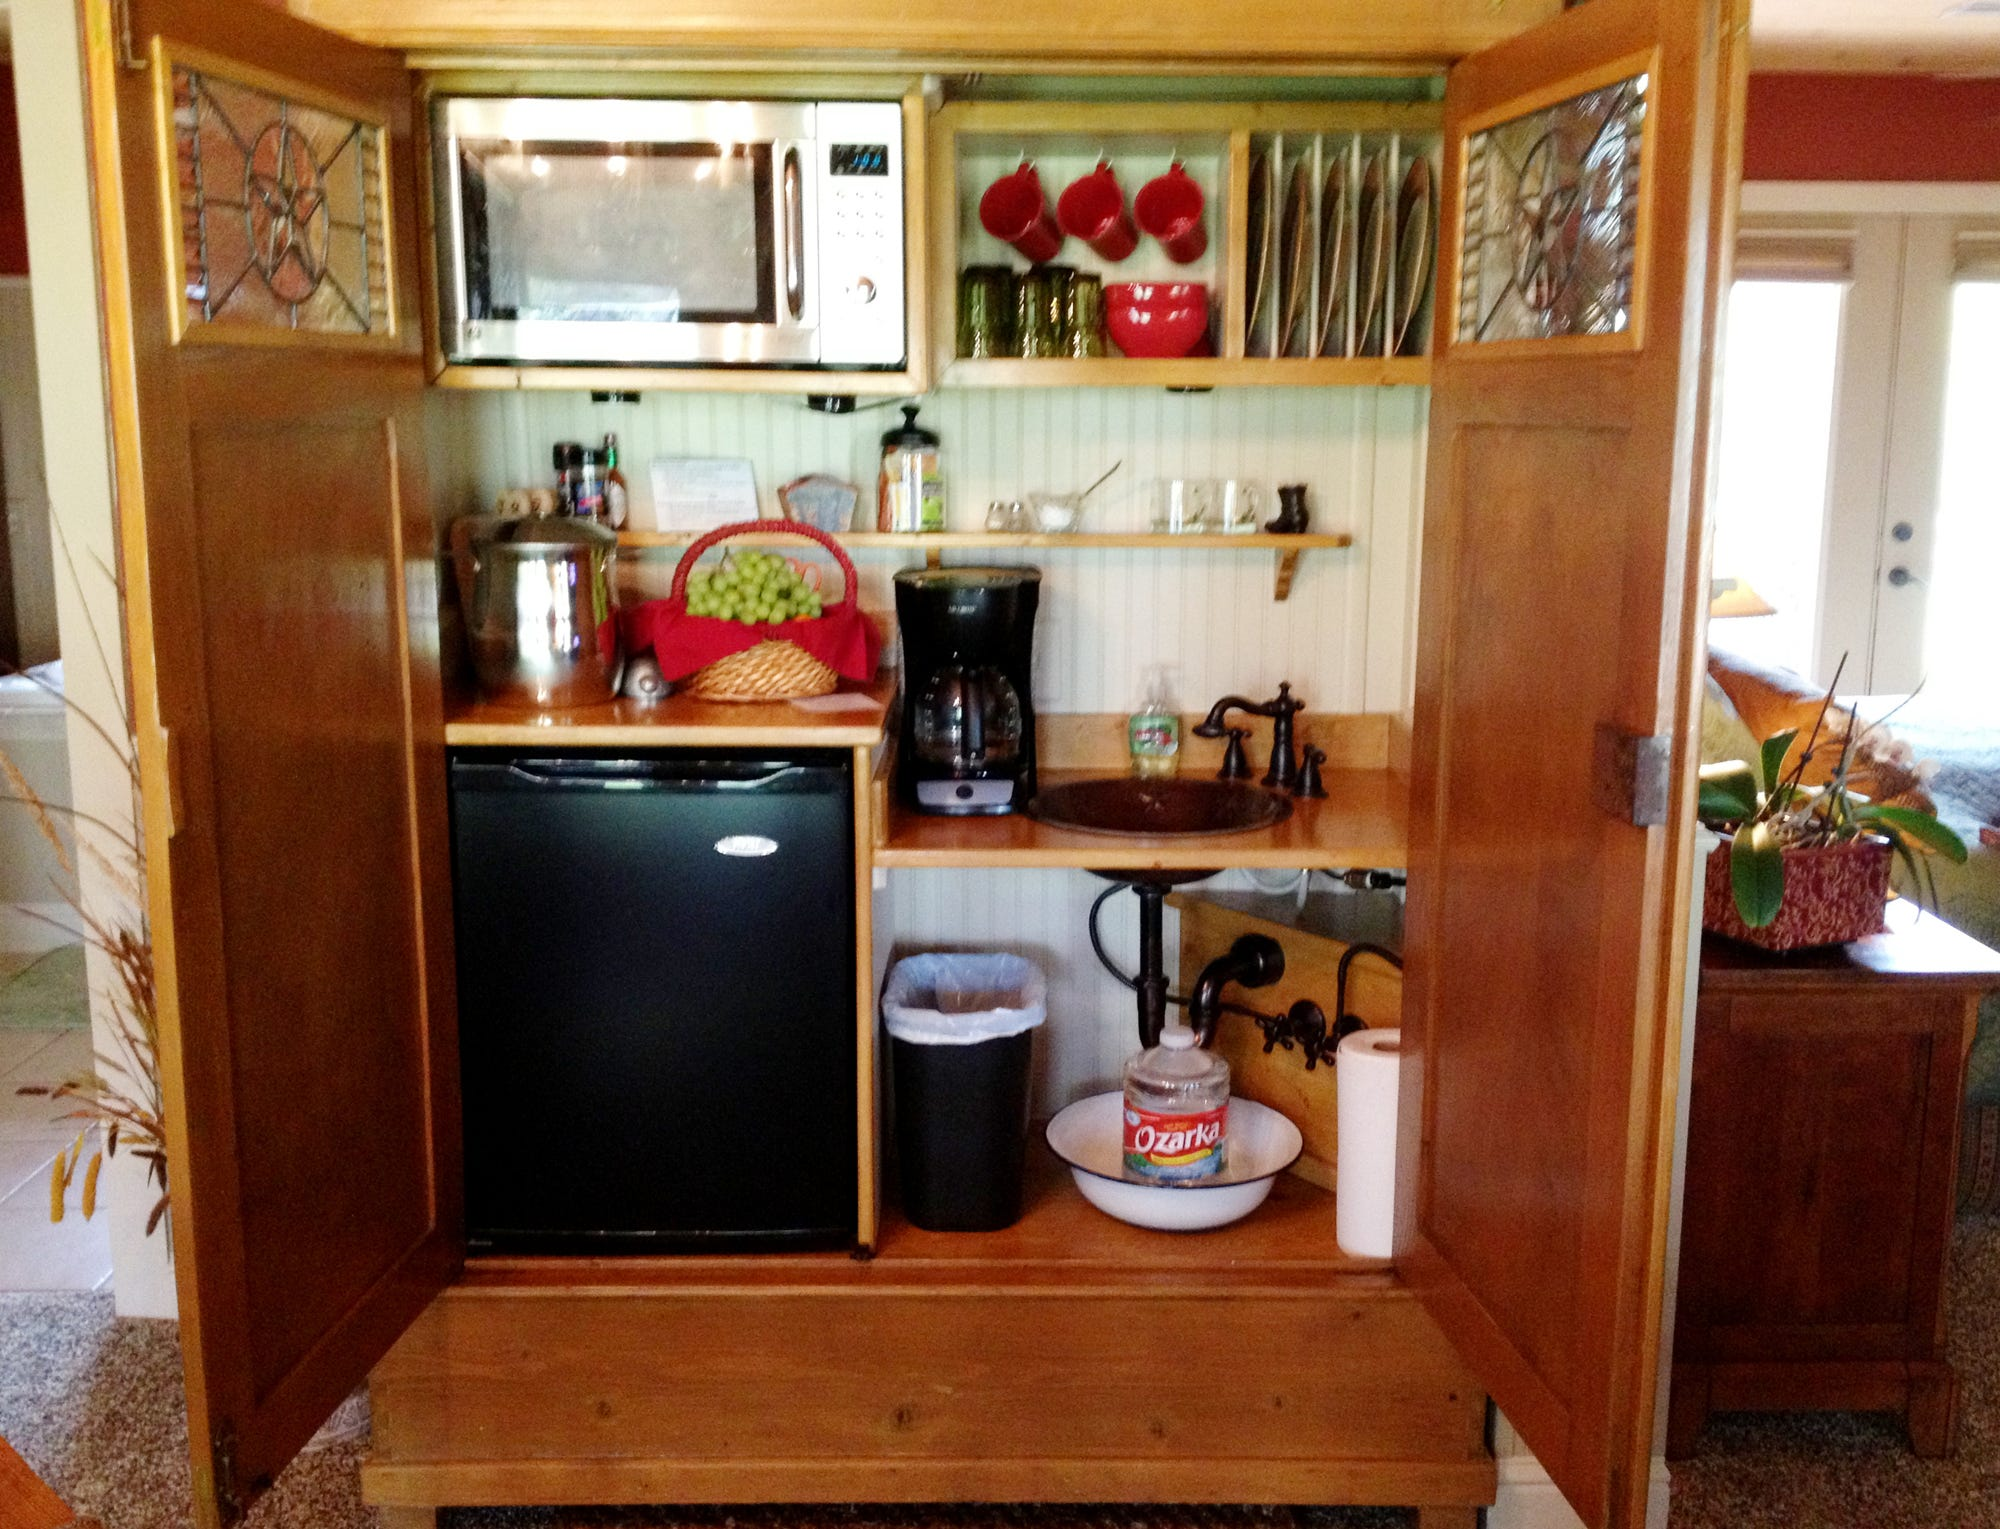 Melinda Heltsley Shared A Picture Of A Kitchenette That She Saw Created  Inside An Old Entertainment